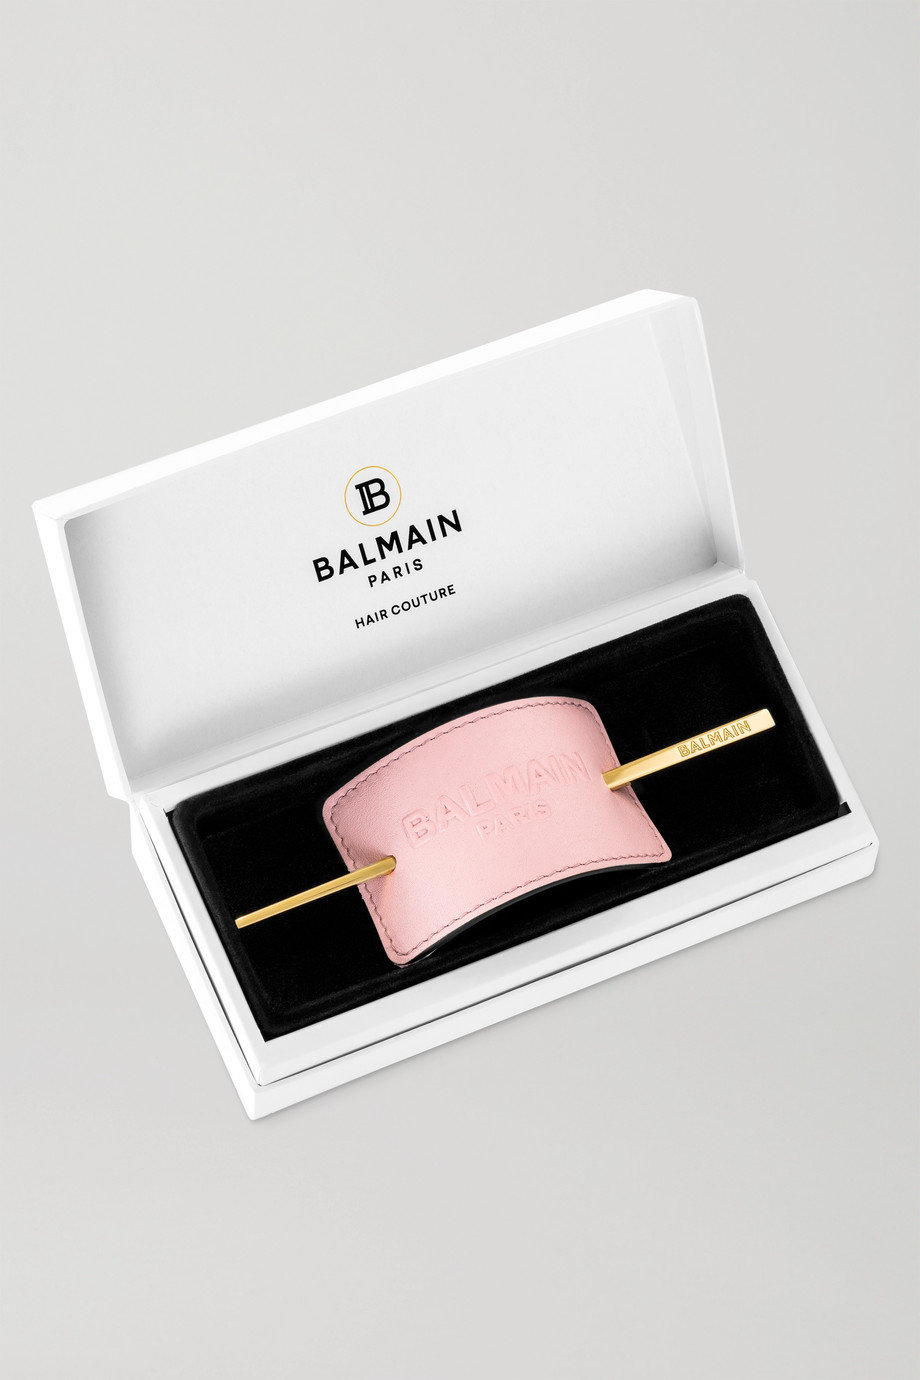 Balmain Paris Hair Couture Gold-plated and embossed leather hair pin - Baby-pink